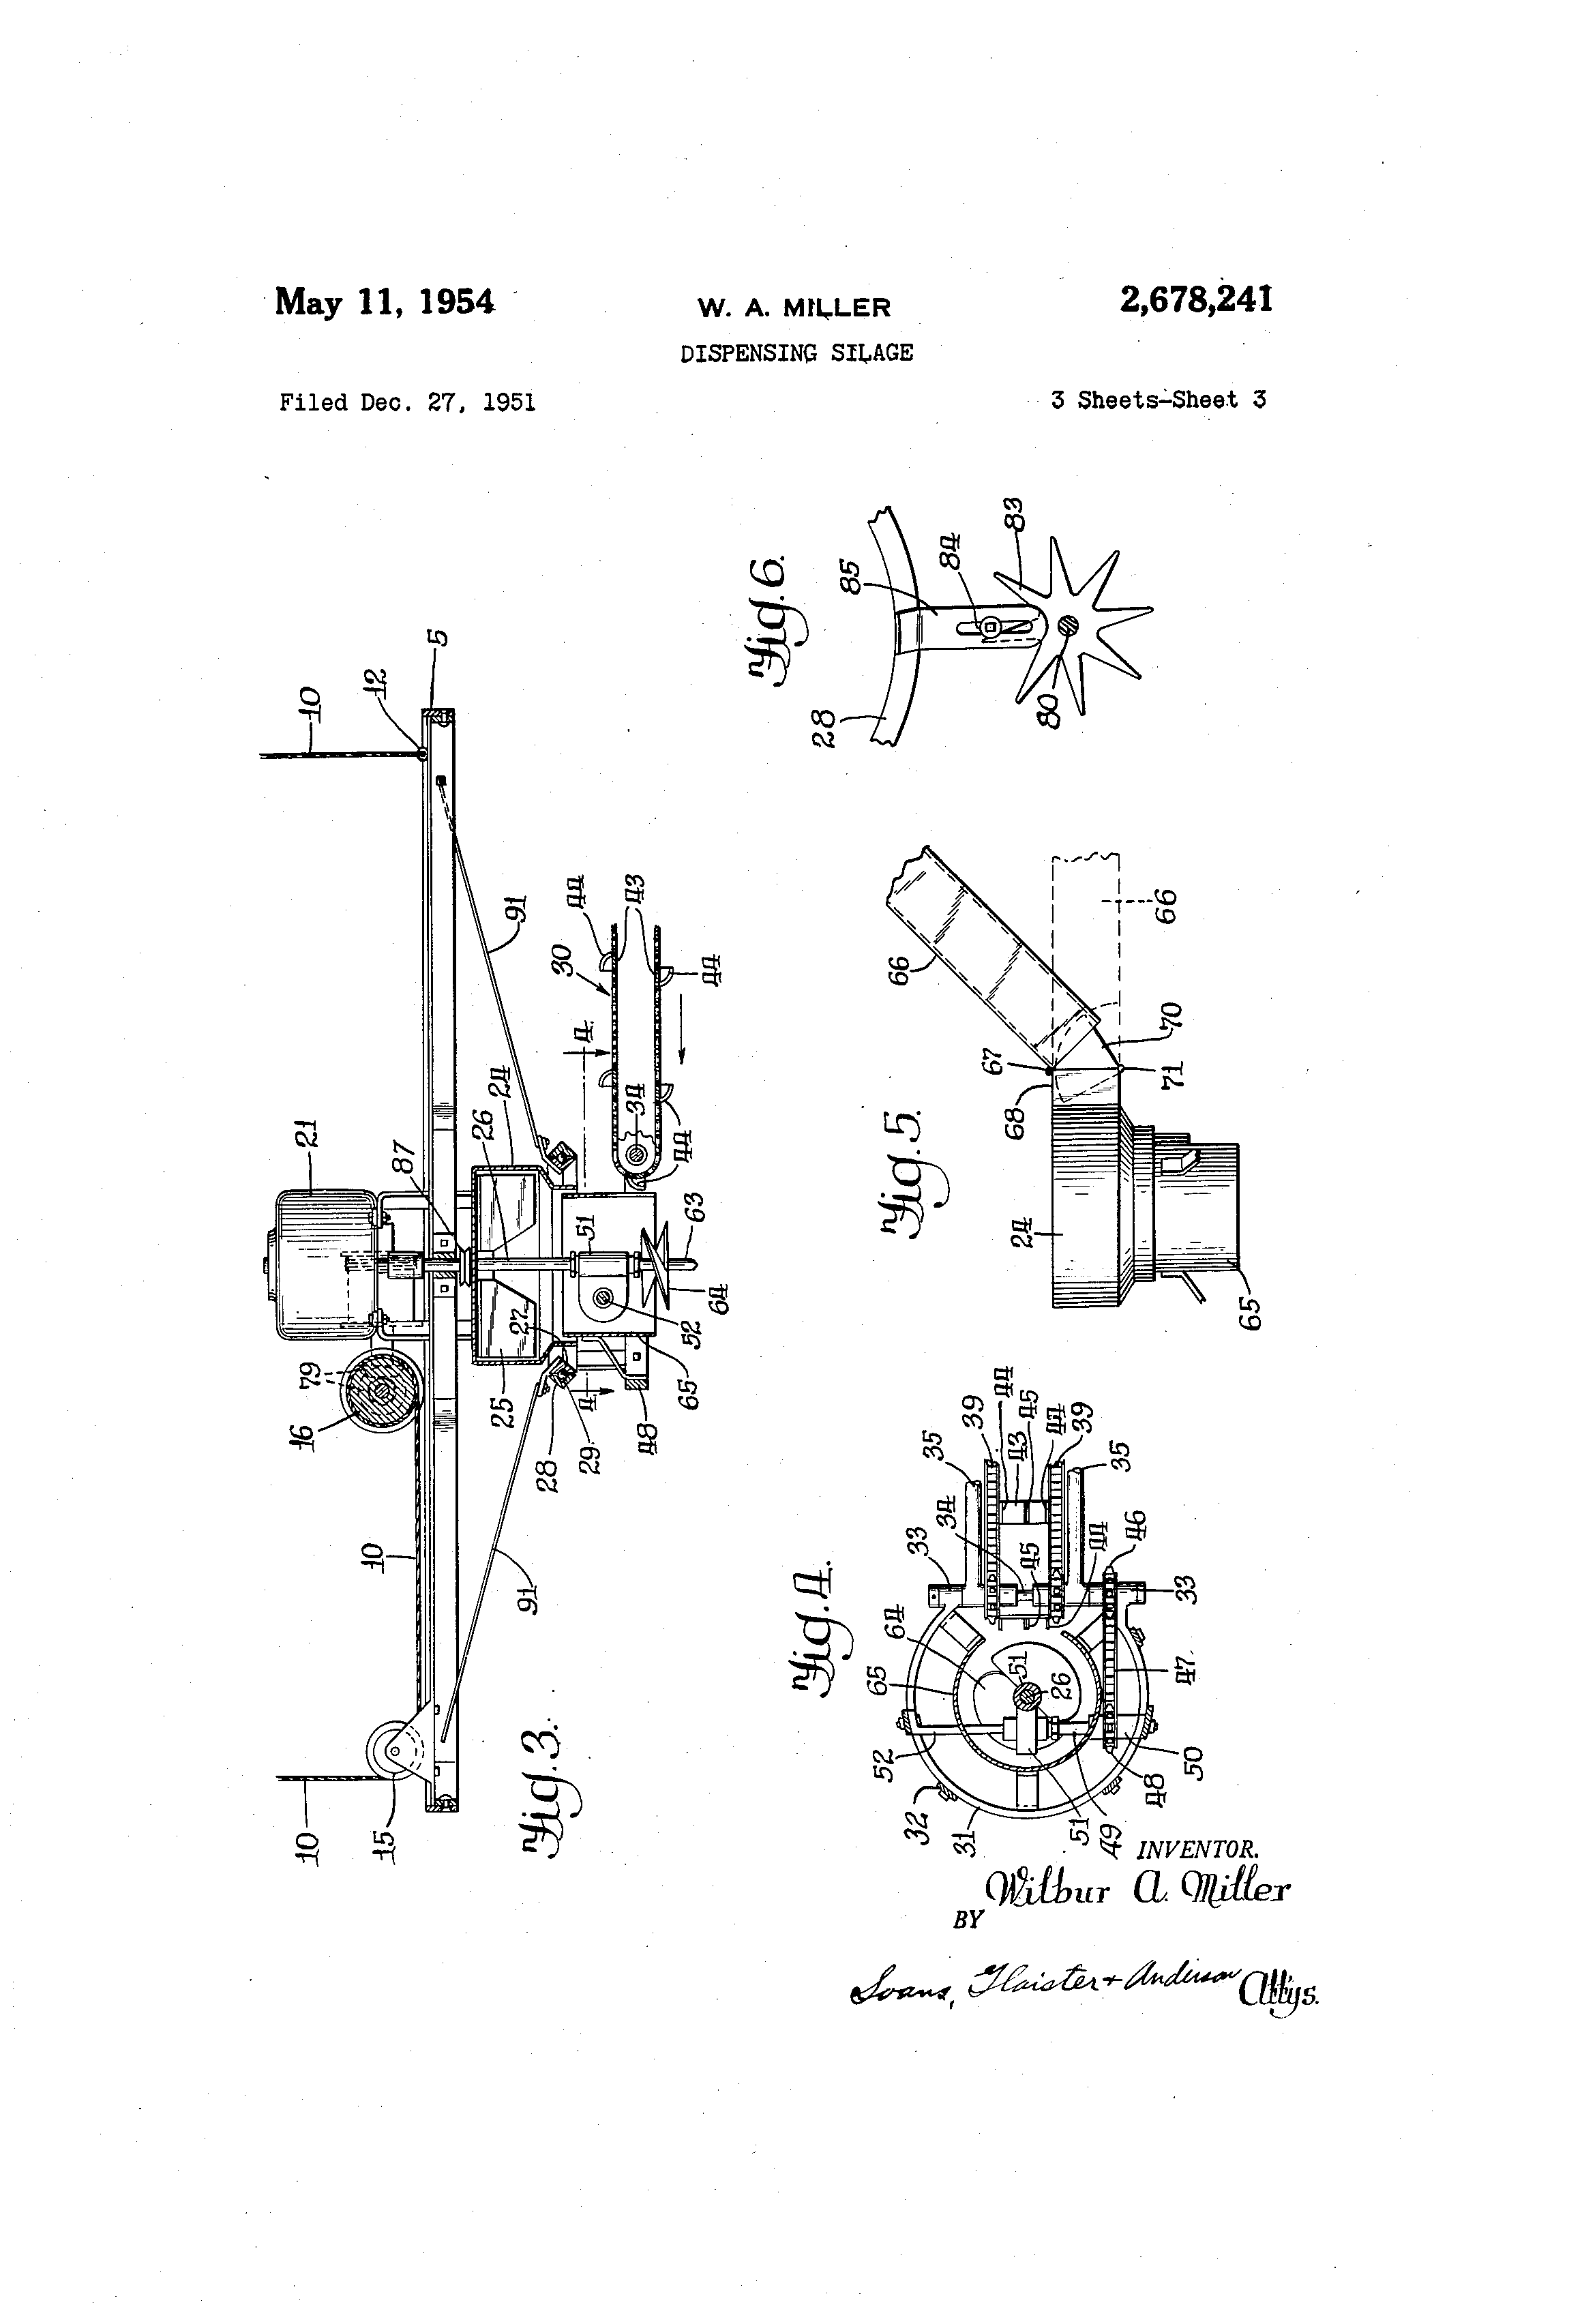 patent us2678241 dispensing silage google patents patent drawing